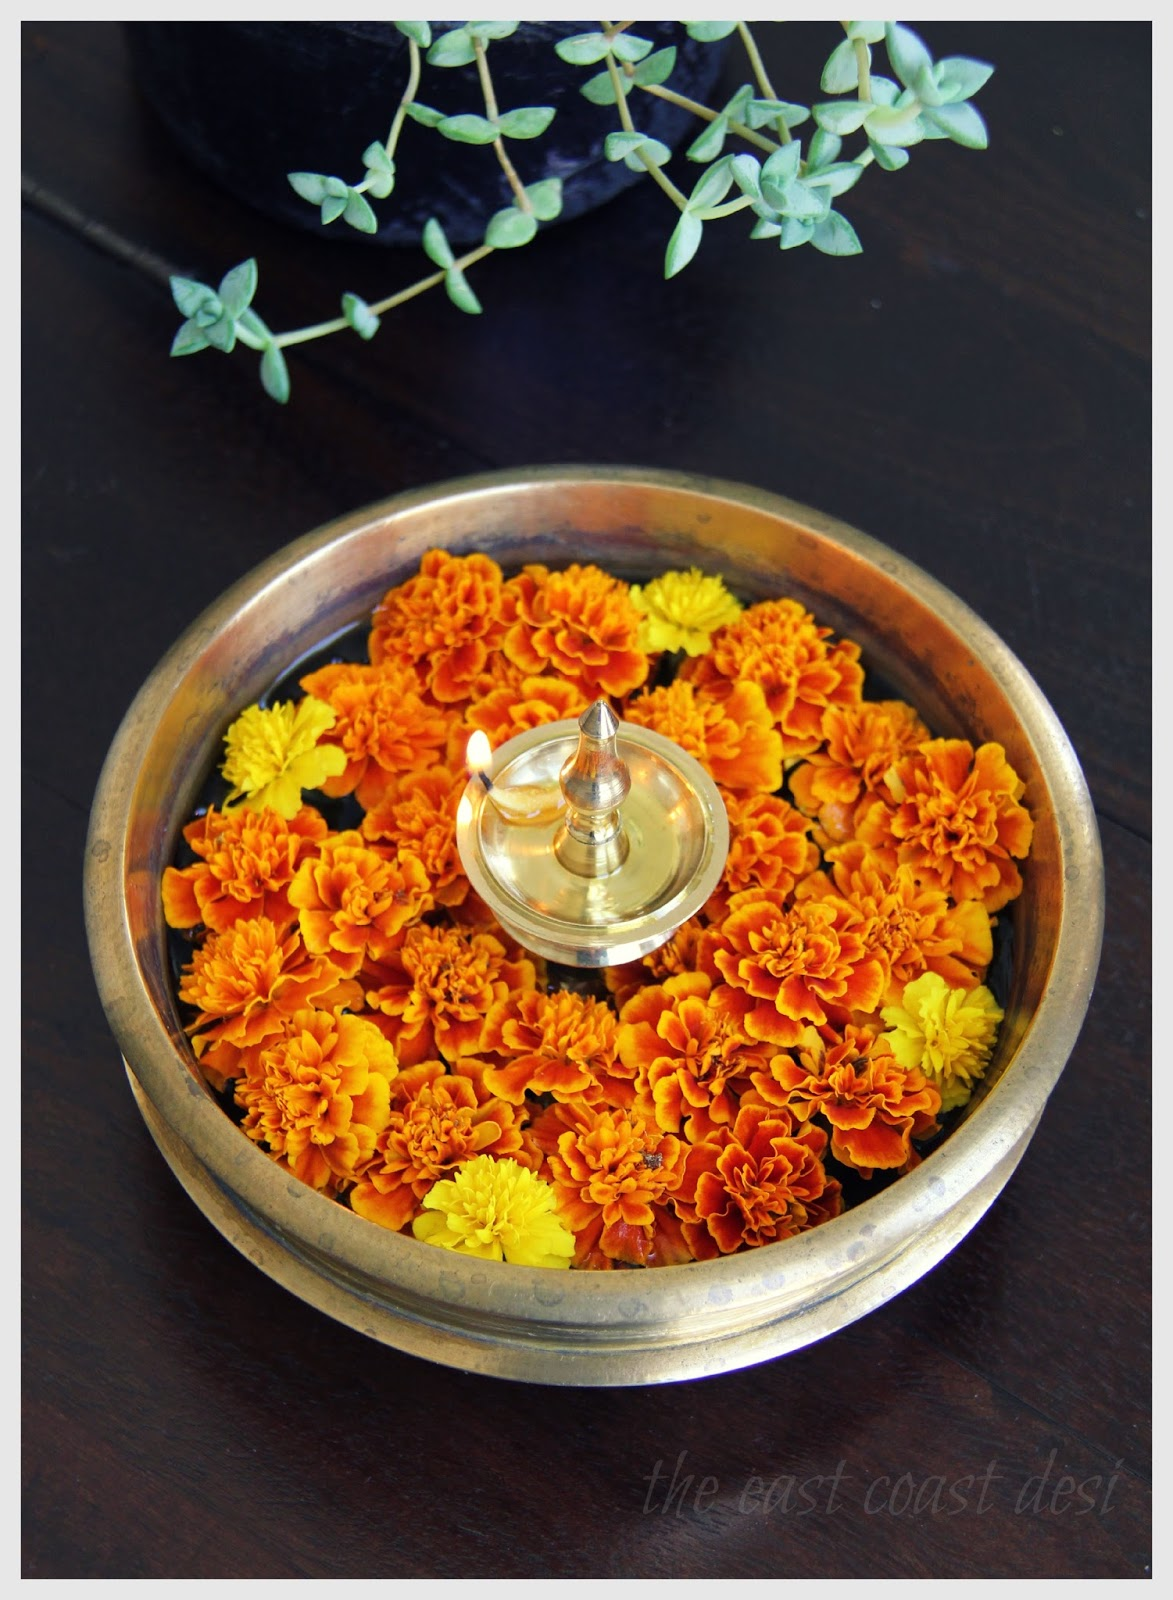 simple decoration for ganesh chaturthi at home 51 best living the east coast desi just in time for some ganesha chaturthi